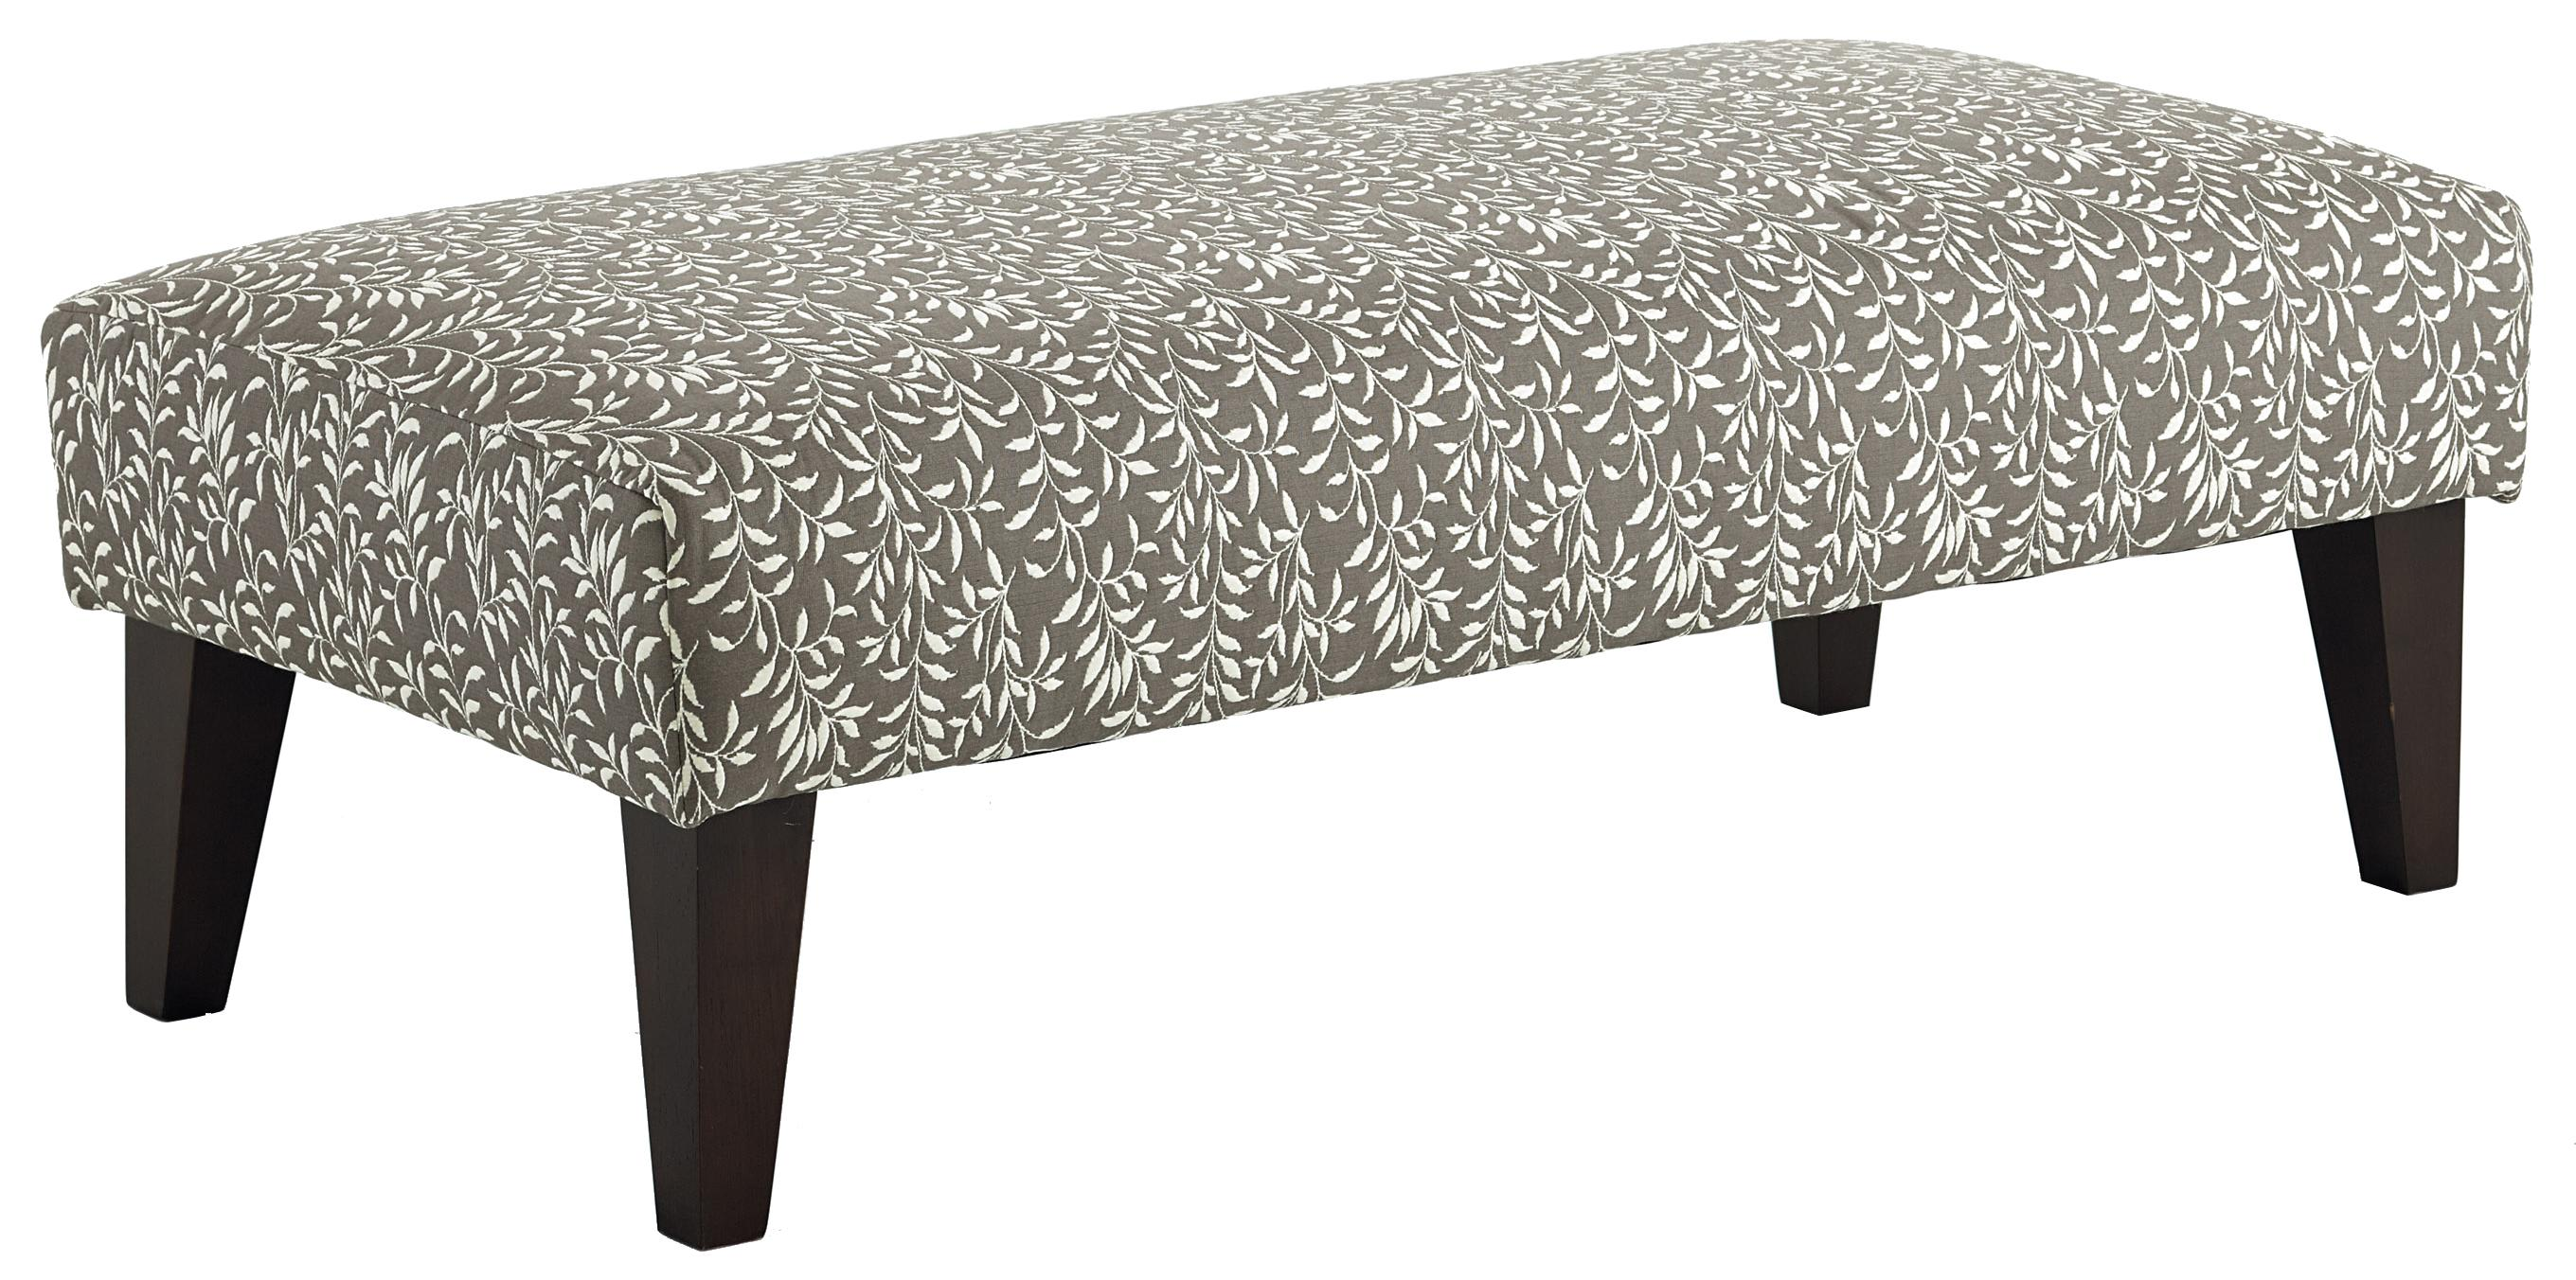 Best Home Furnishings Ottomans Linette Ottoman - Item Number: 9950